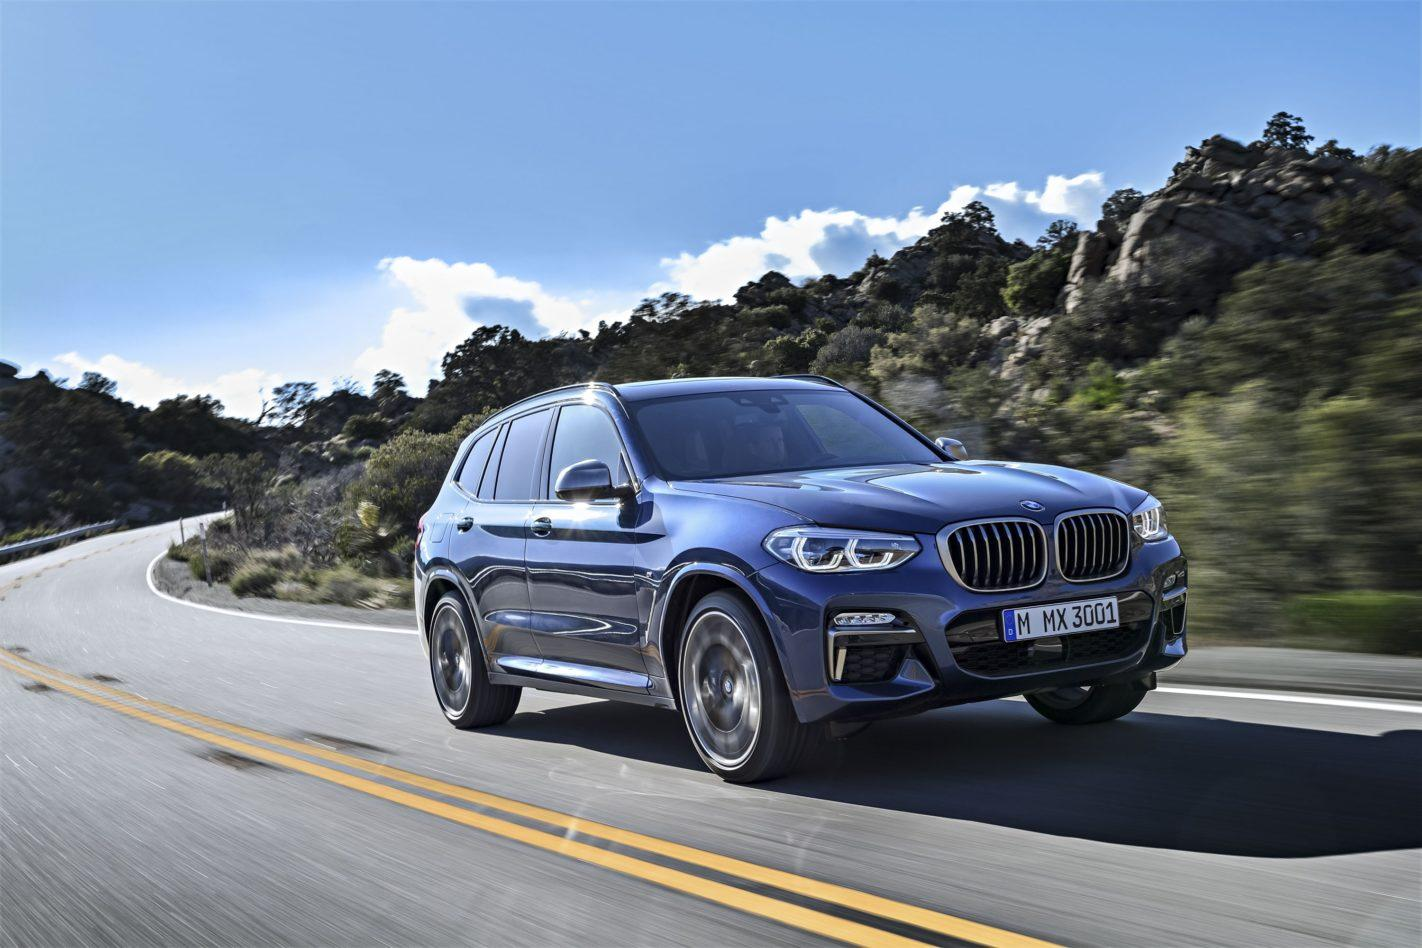 2019 BMW X3 Images | Auto Car Rumors